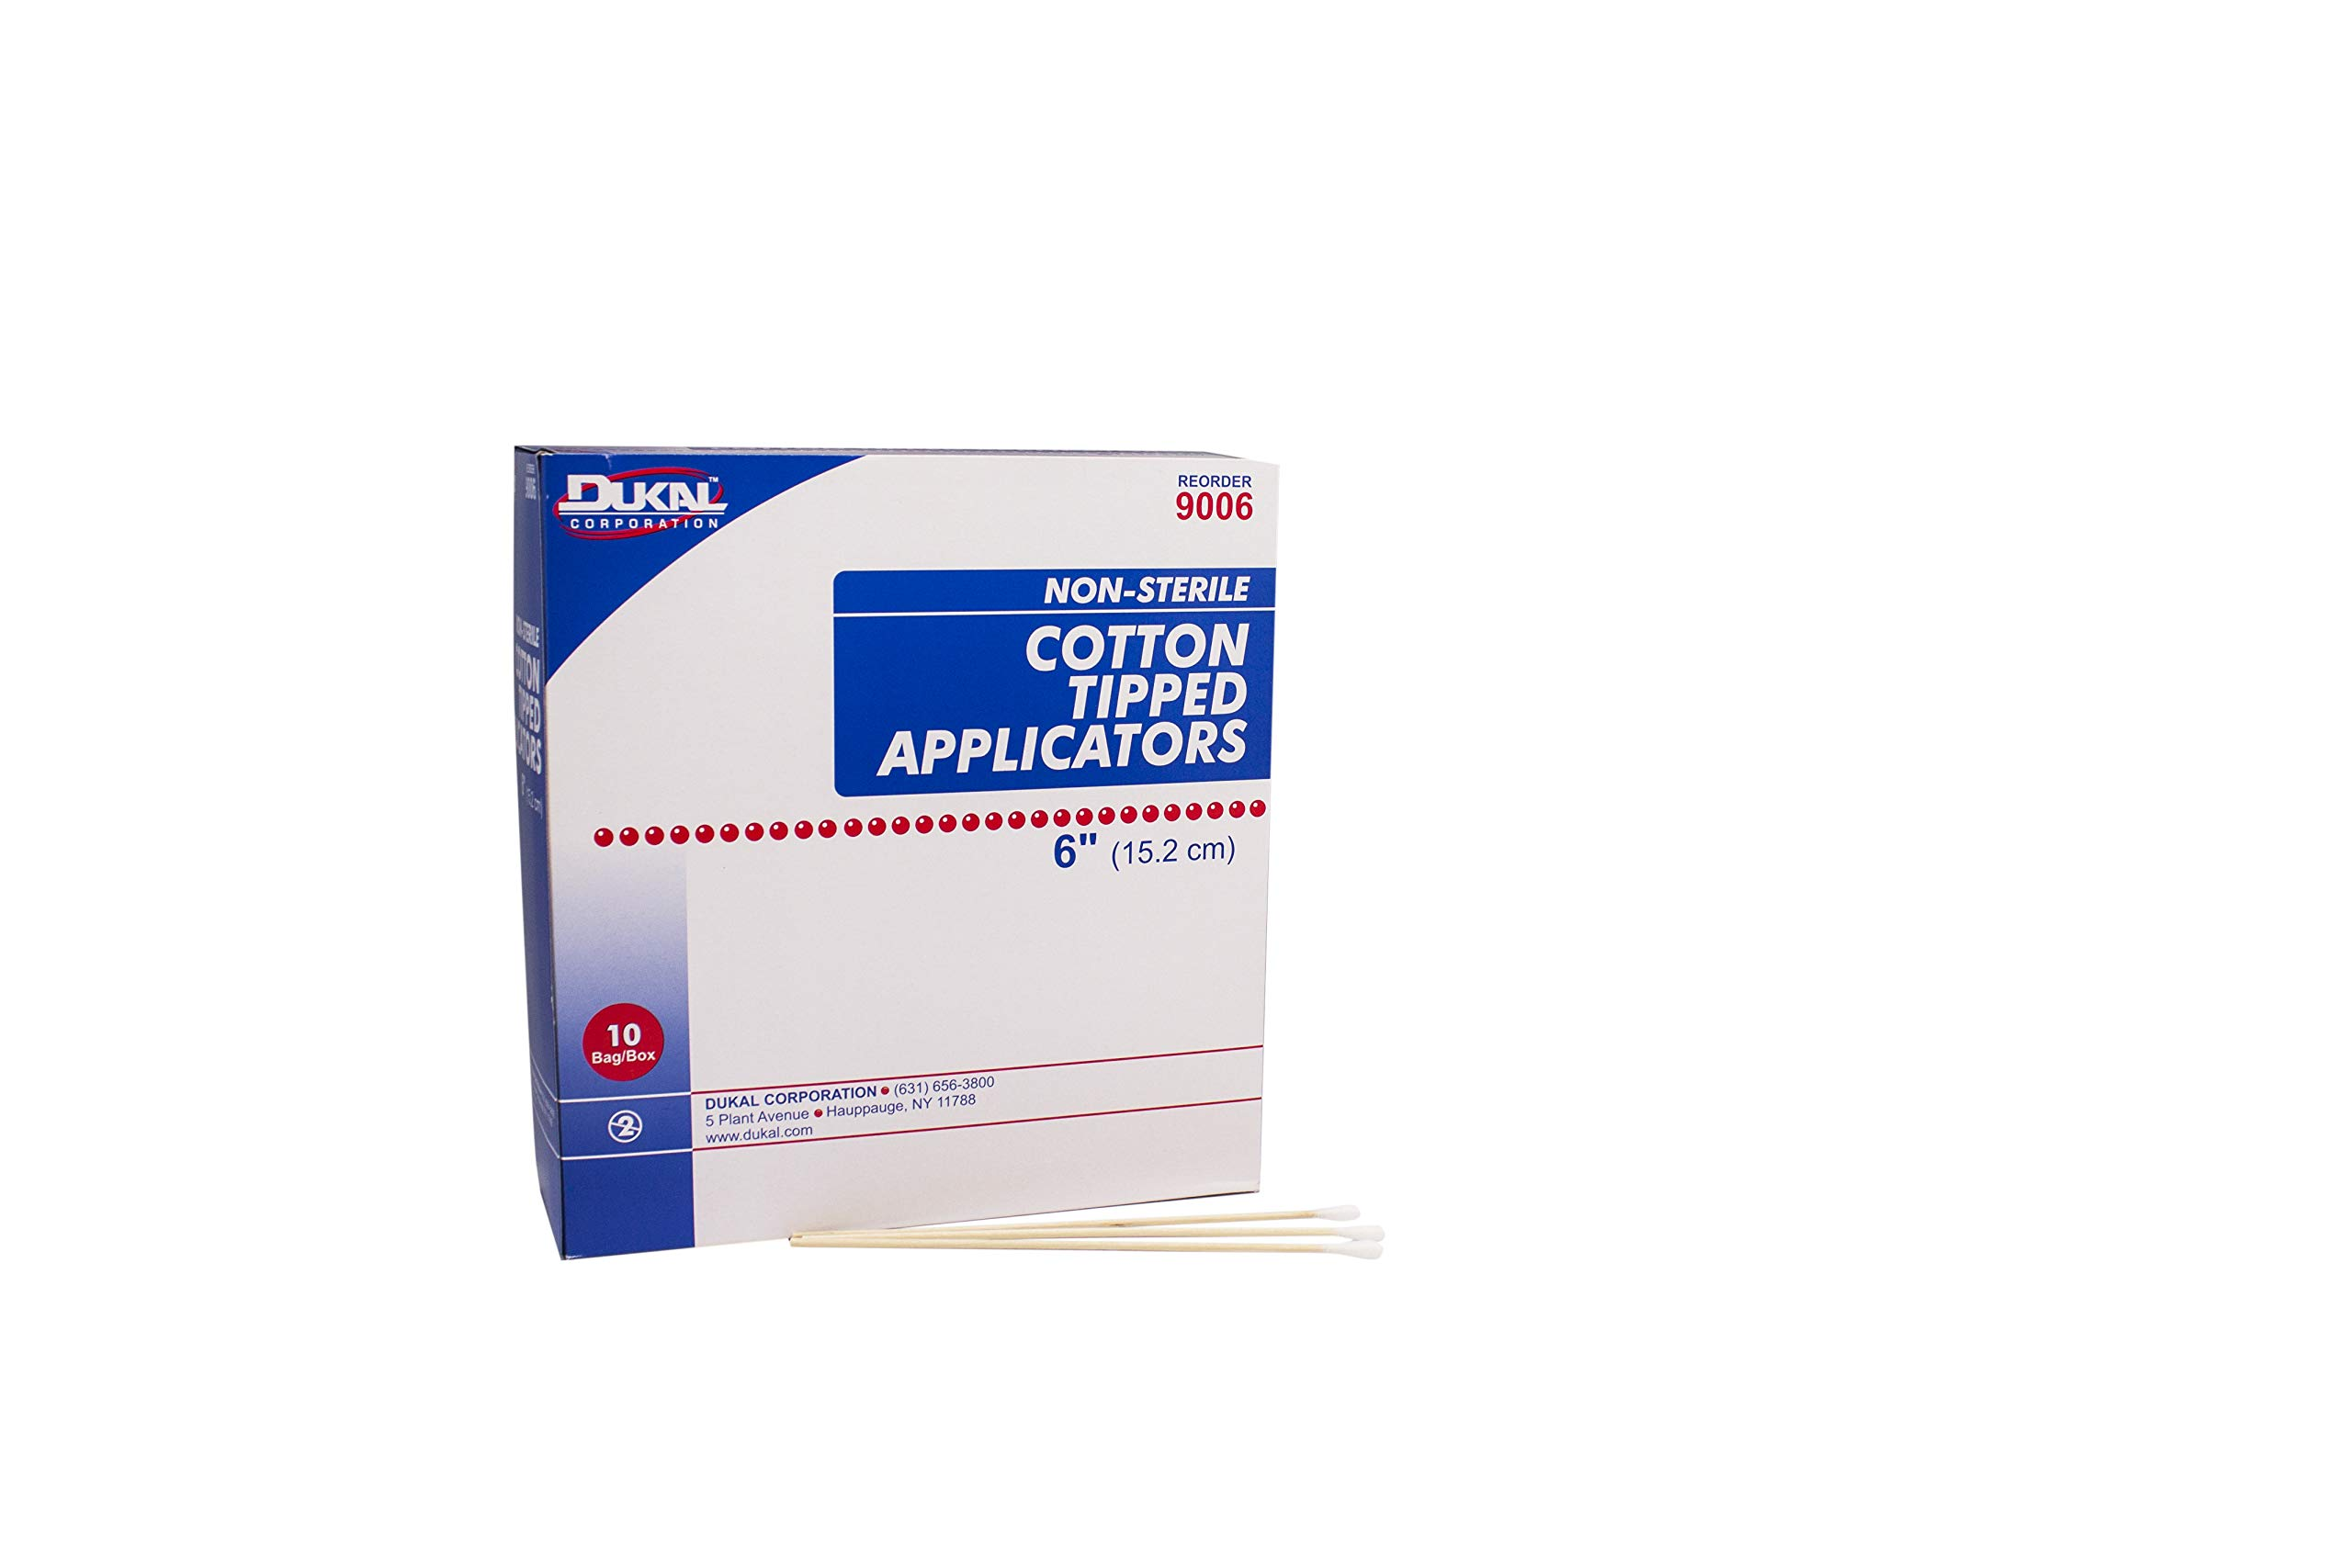 Dukal 9006 Cotton Tipped Applicator, Non-Sterile, 6'' (10 Bags of 100) (Pack of 1000)